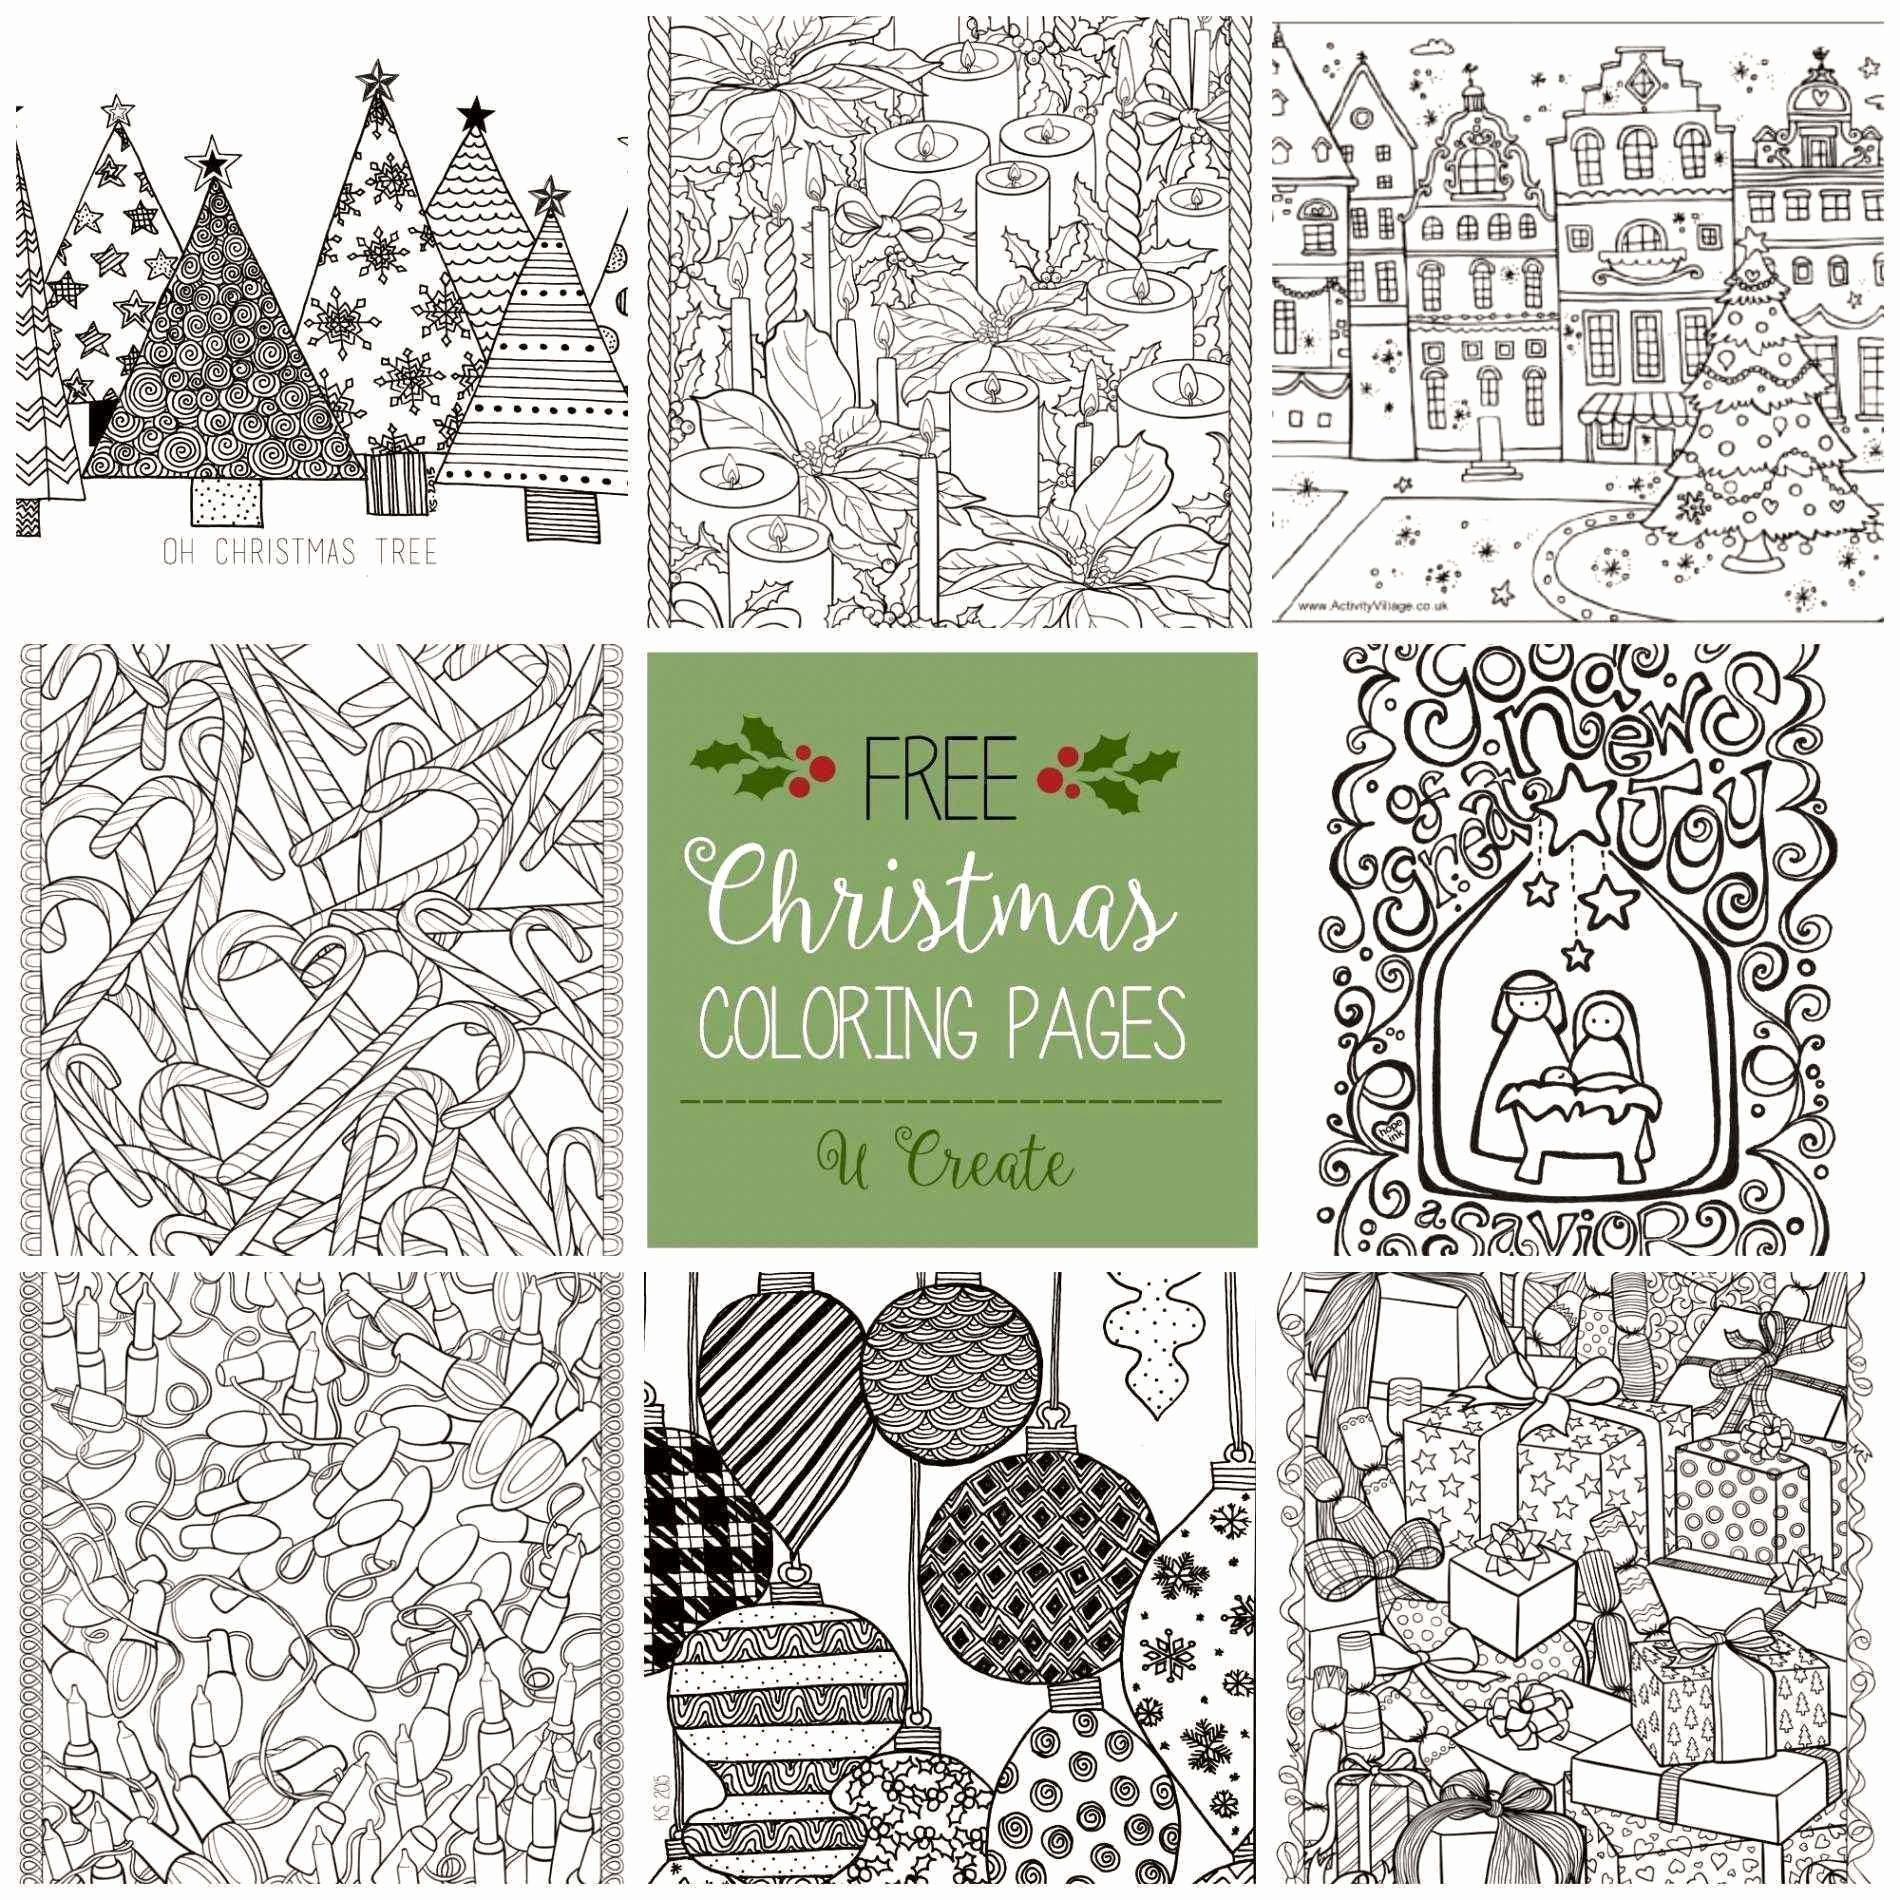 Christmas Coloring Page Websites Unique Candy Coloring Pages Printable Christmas Coloring Pages Free Christmas Coloring Pages Christmas Tree Coloring Page